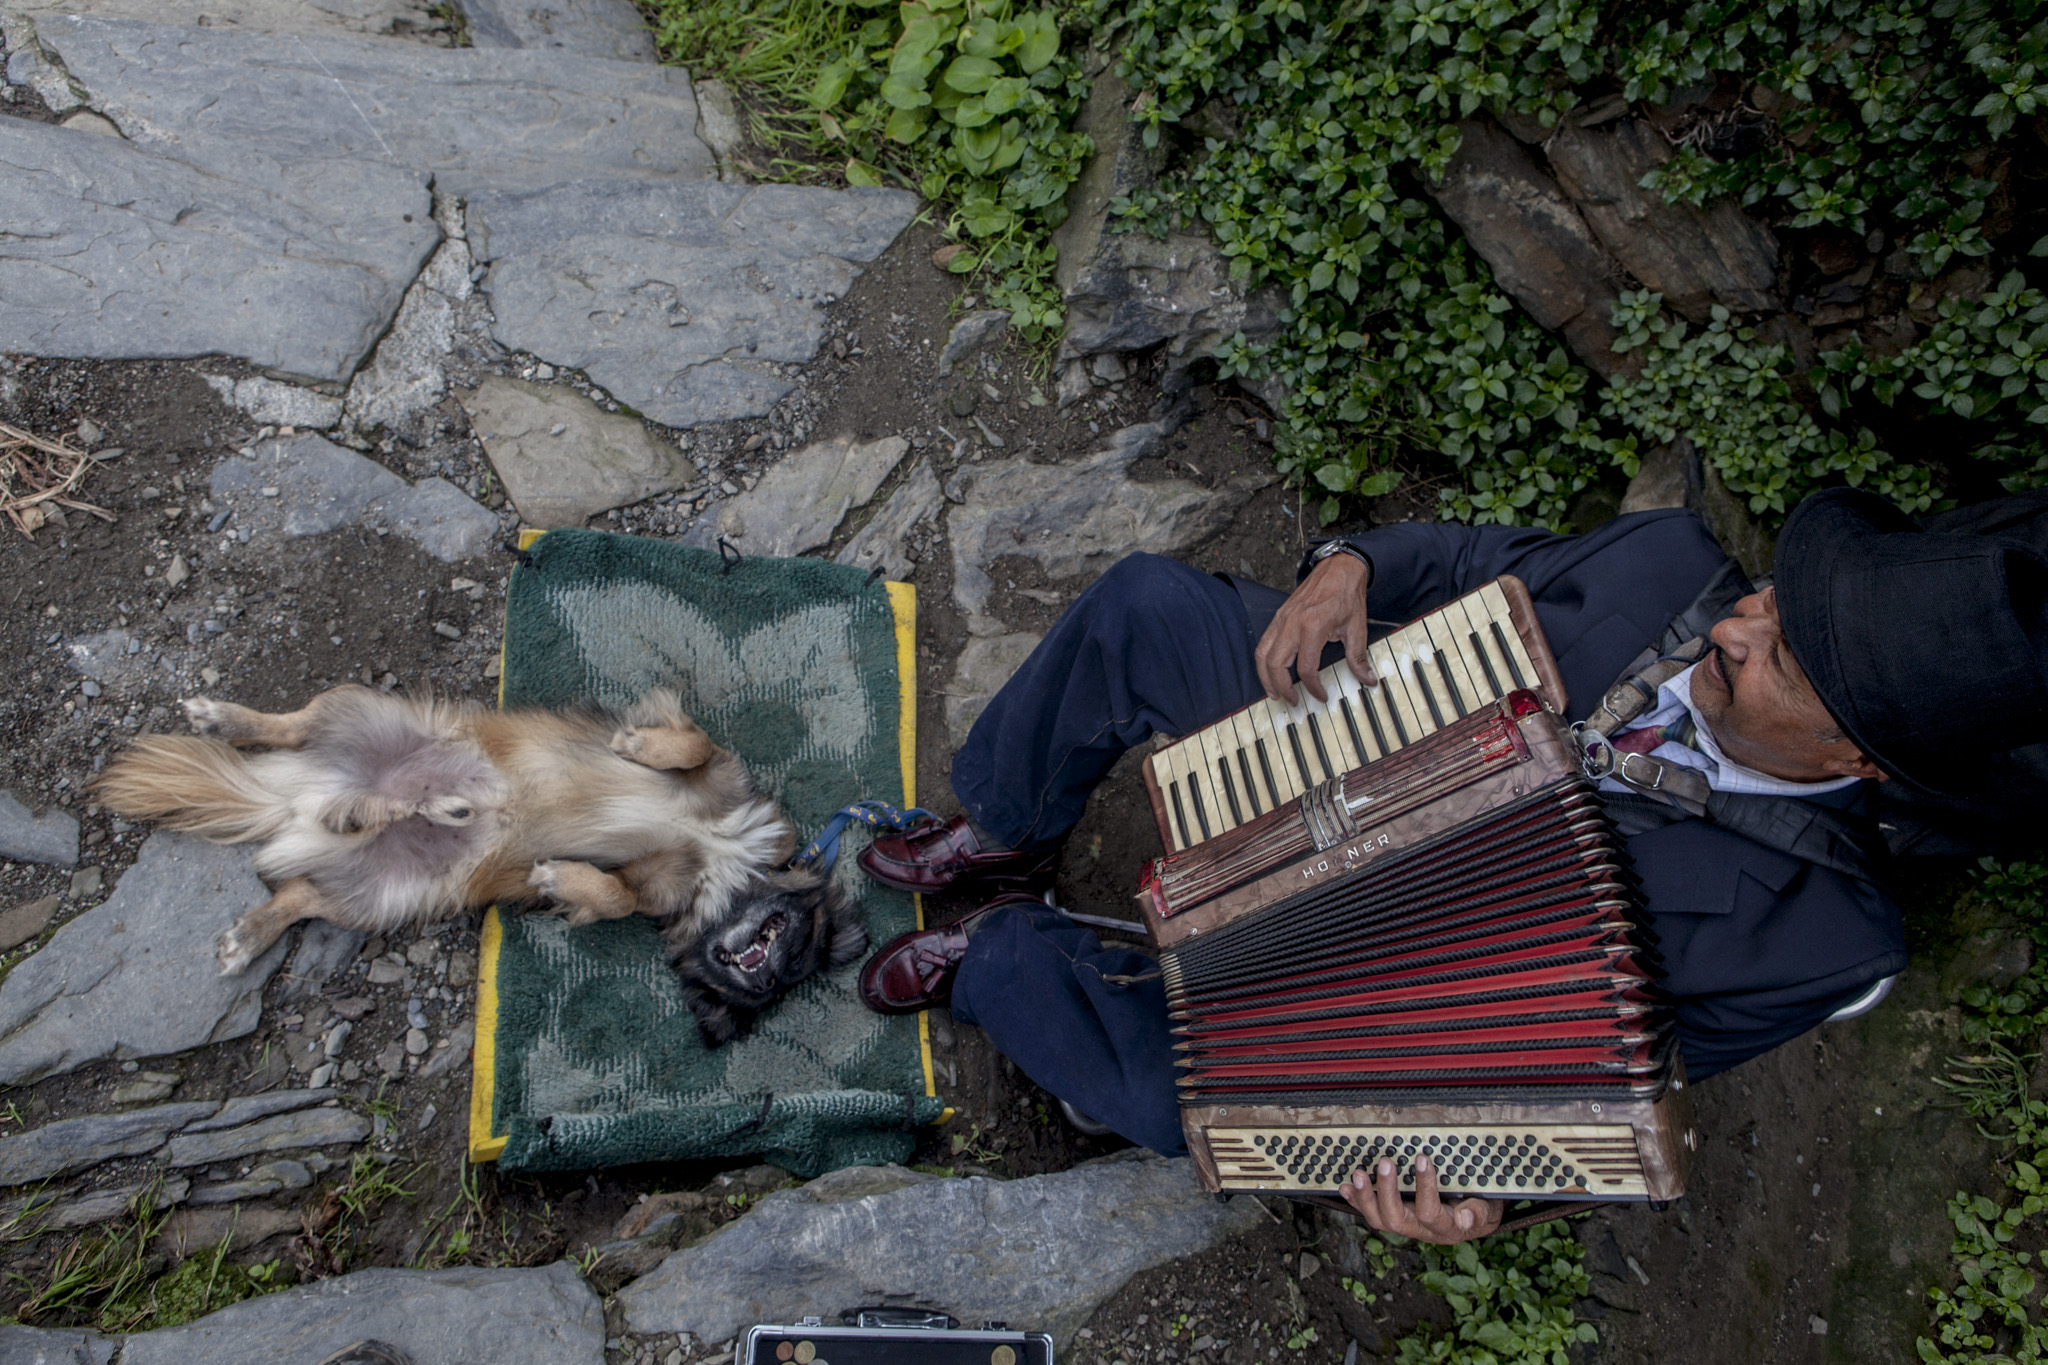 The lilting sounds of an accordion greeted us as we approached Vernazza.